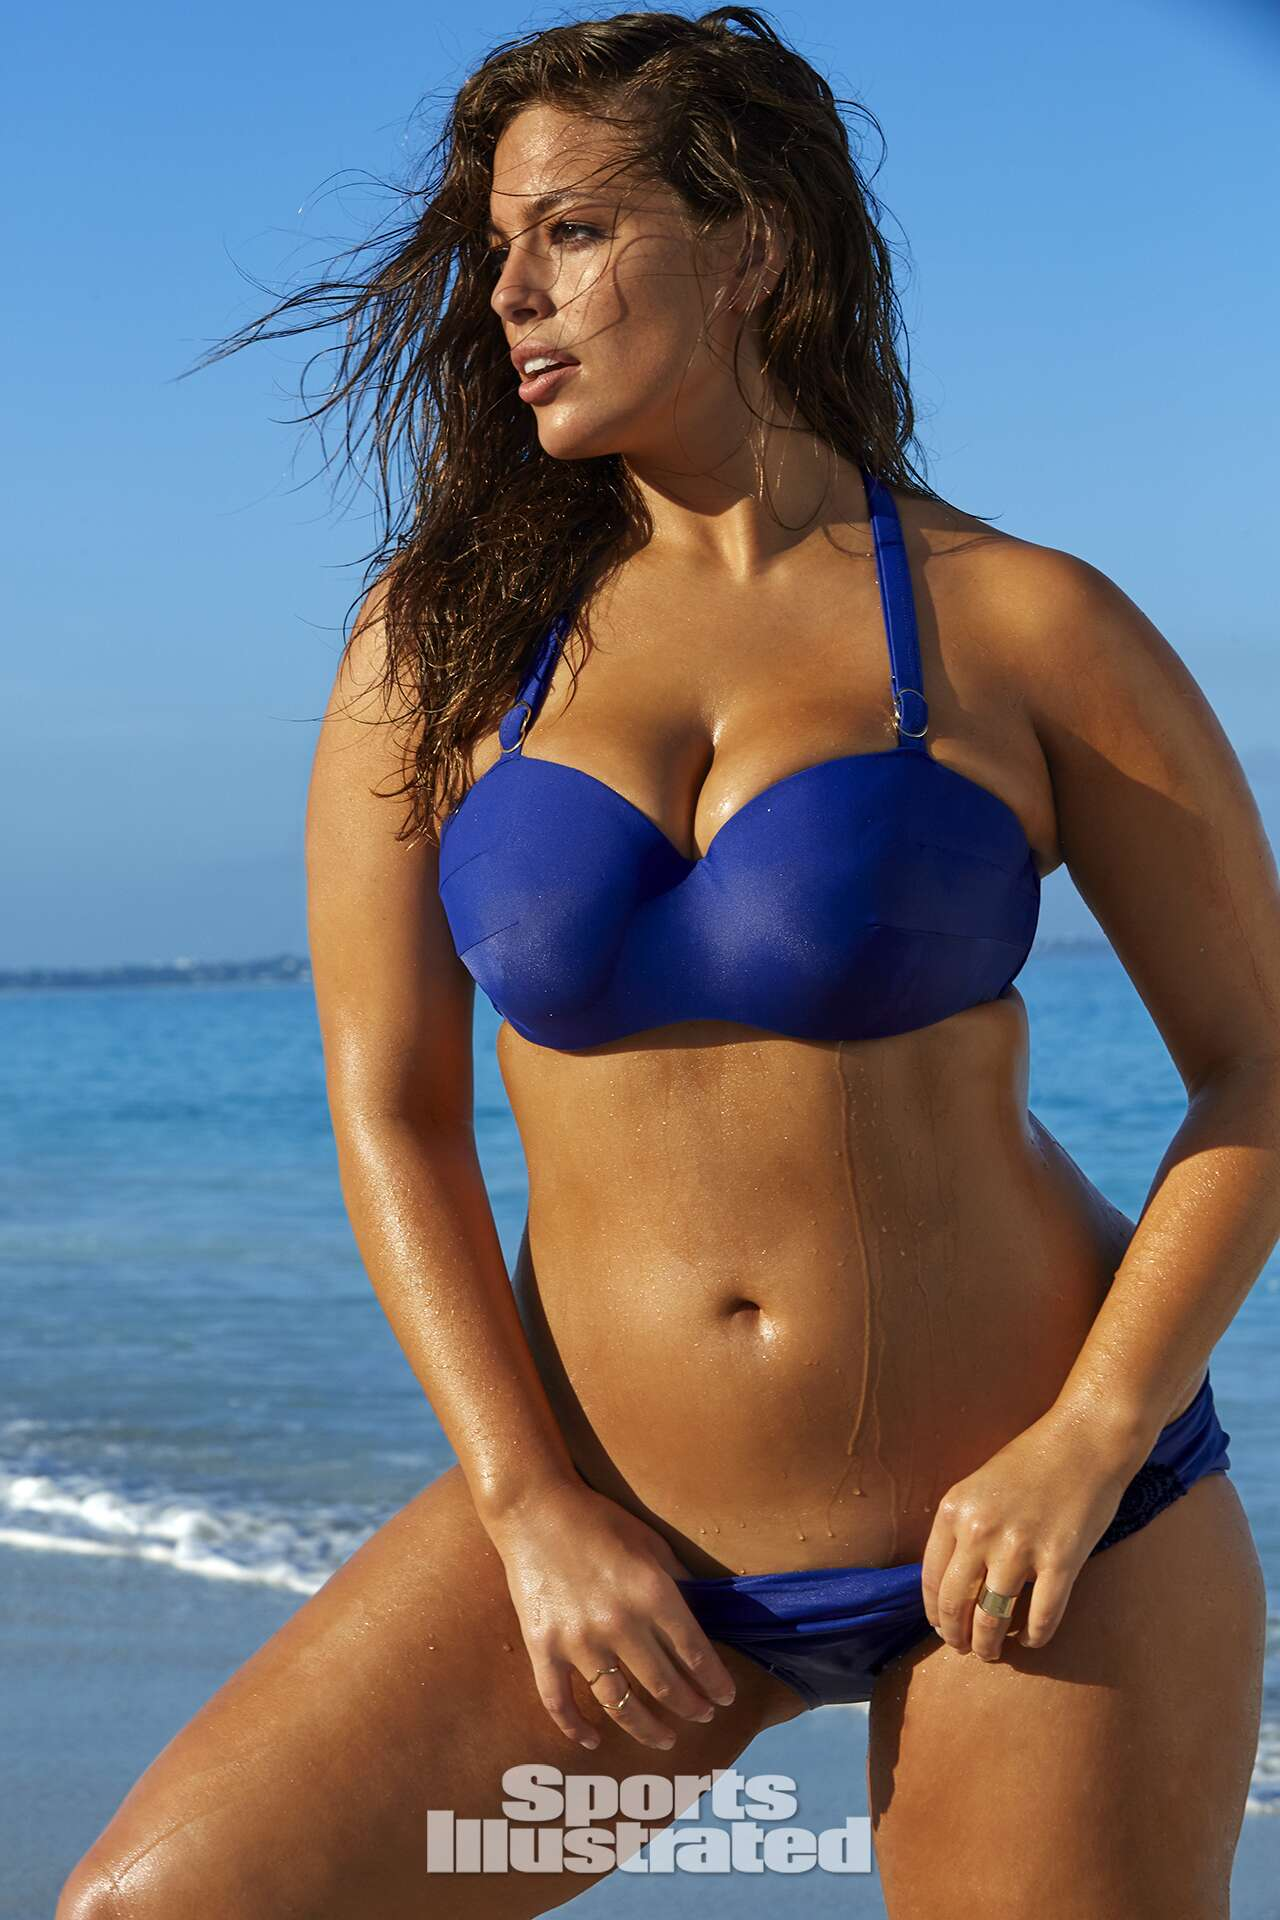 Ashley Graham was photographed by James Macari in Turks & Caicos. Swimsuit by Lane Bryant.